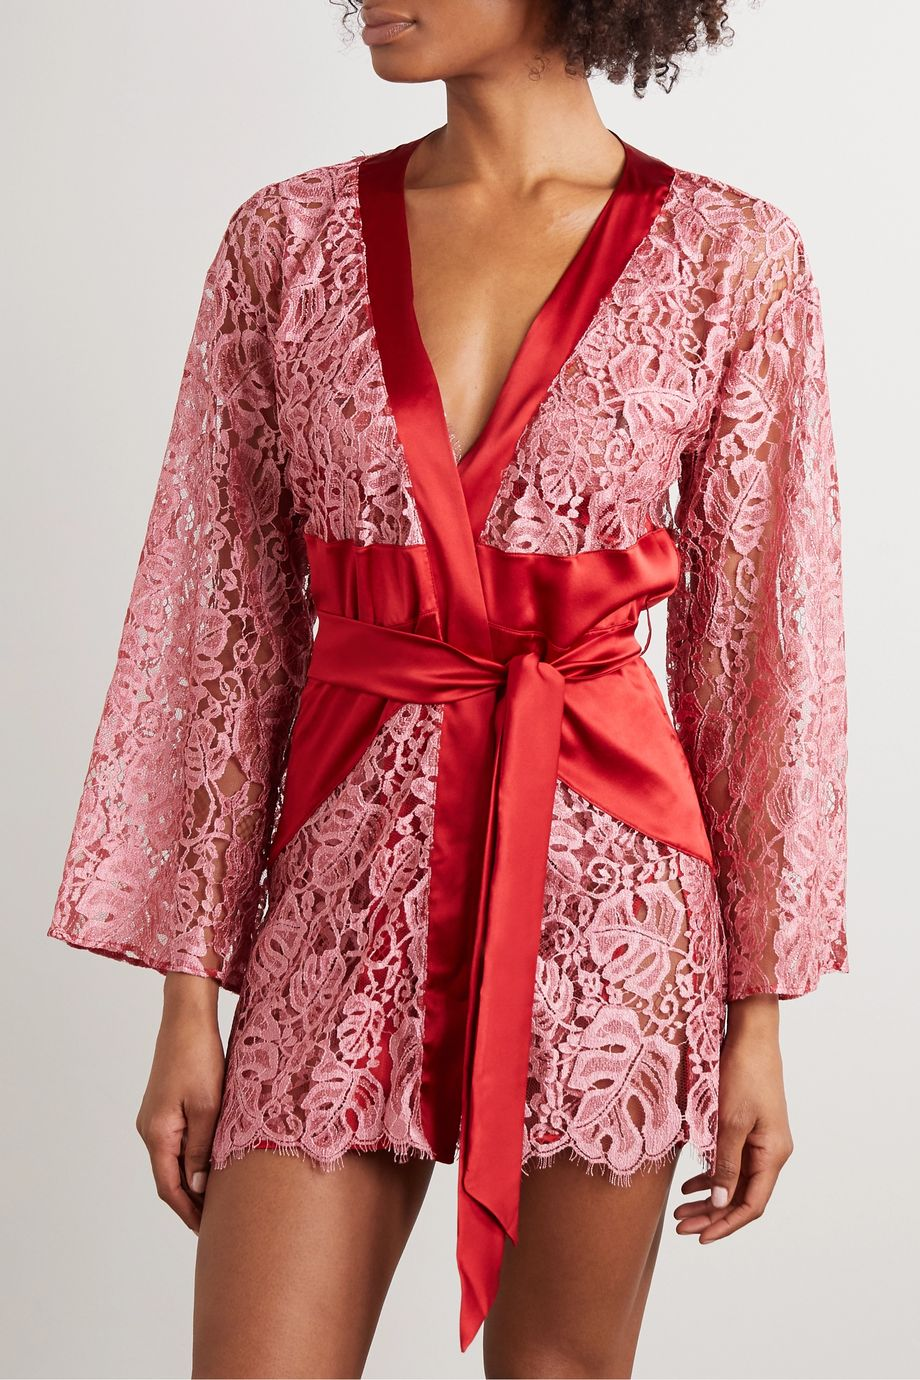 Coco de Mer Anthurium belted lace and satin robe